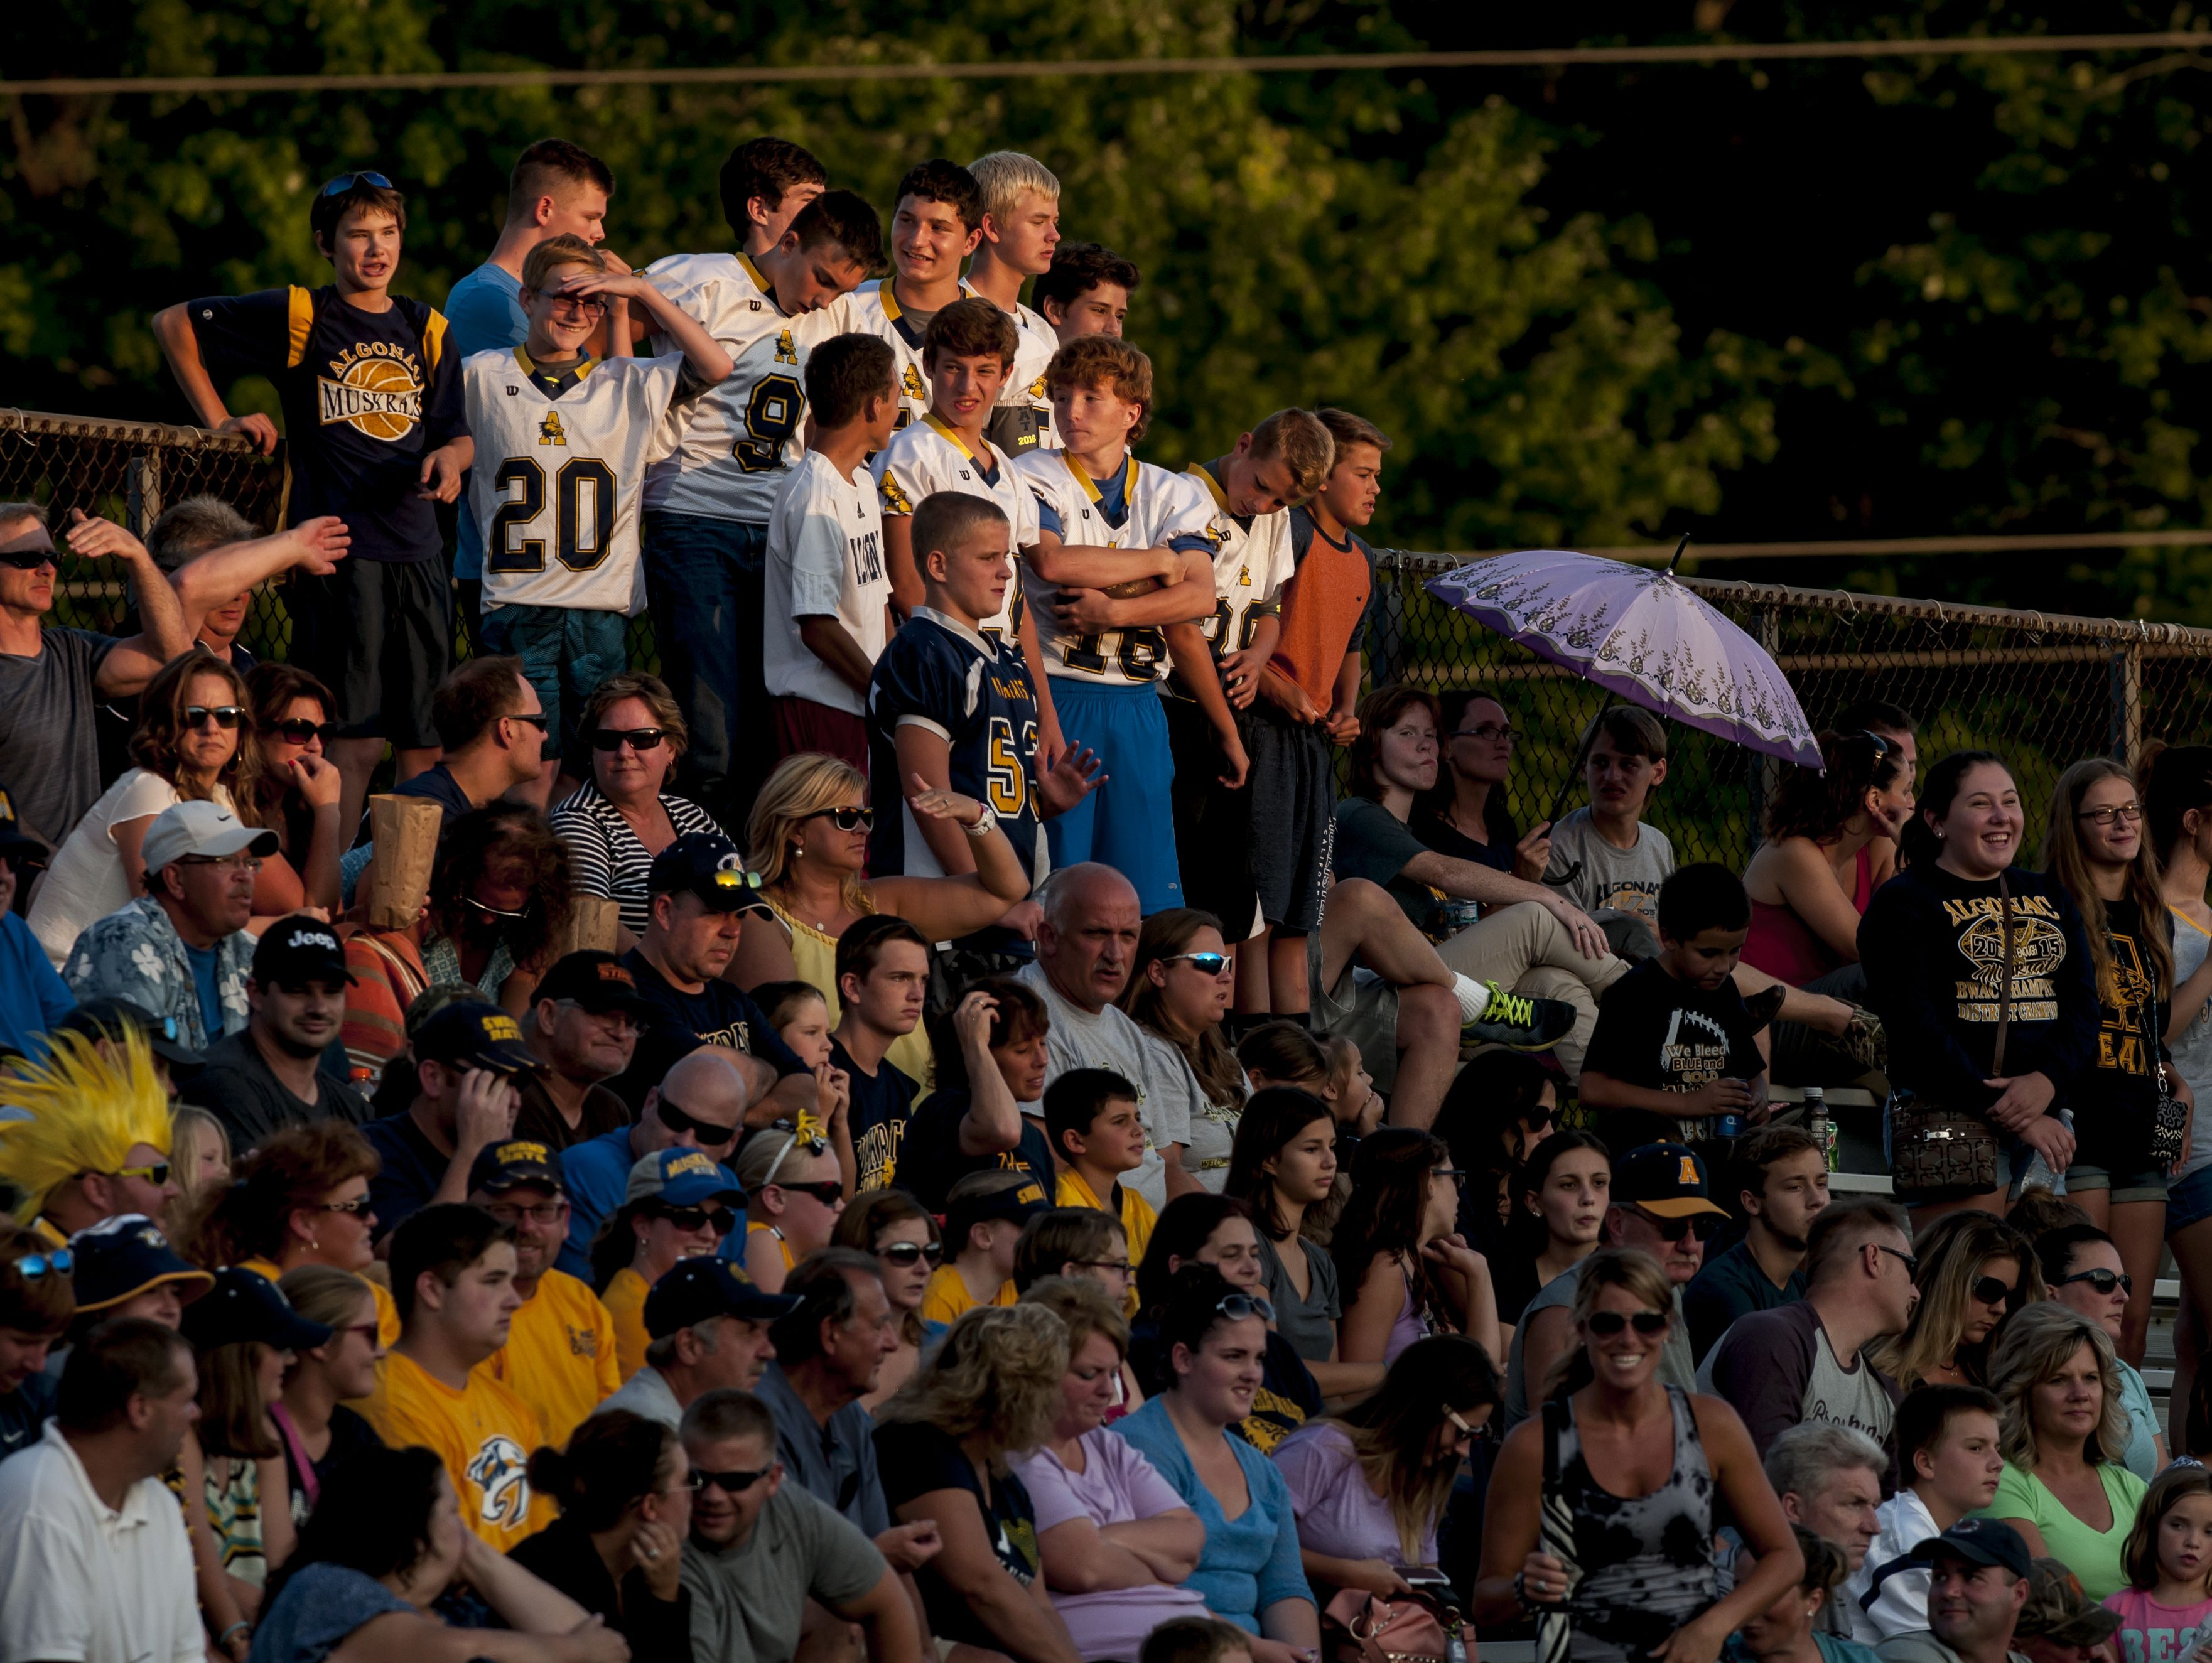 Fans watch from the stands as the sun sets during a football game Thursday, August 25, 2016 at East China Stadium.